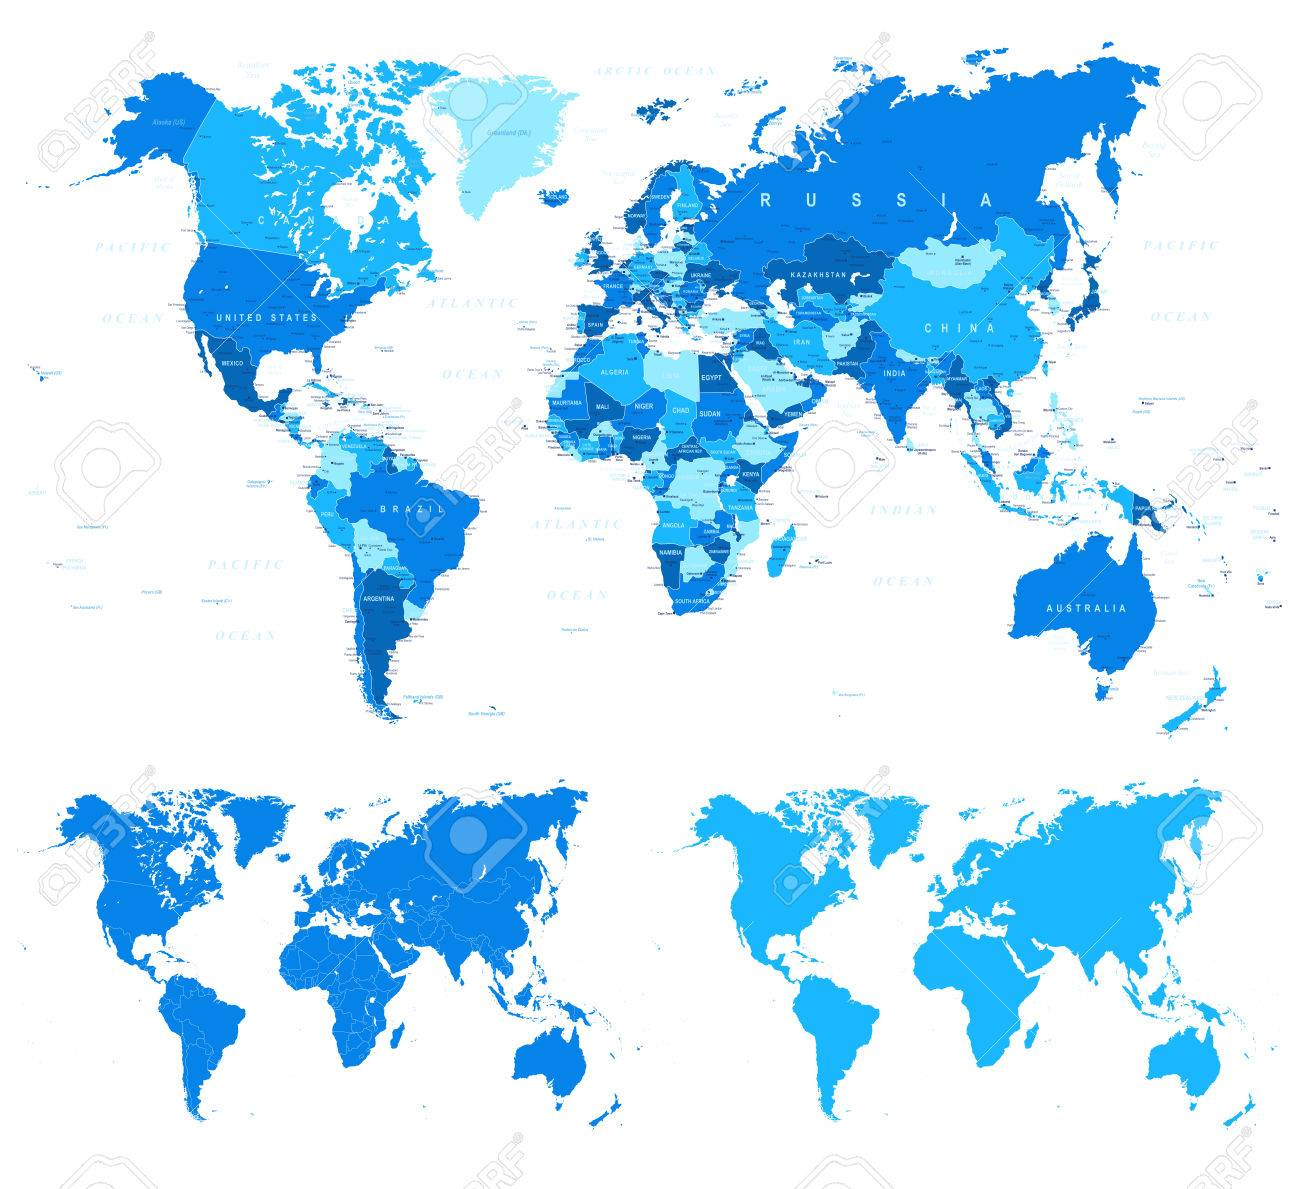 Blue world map borders countries and cities illustration blue world map borders countries and cities illustration foto de archivo 61834200 gumiabroncs Image collections